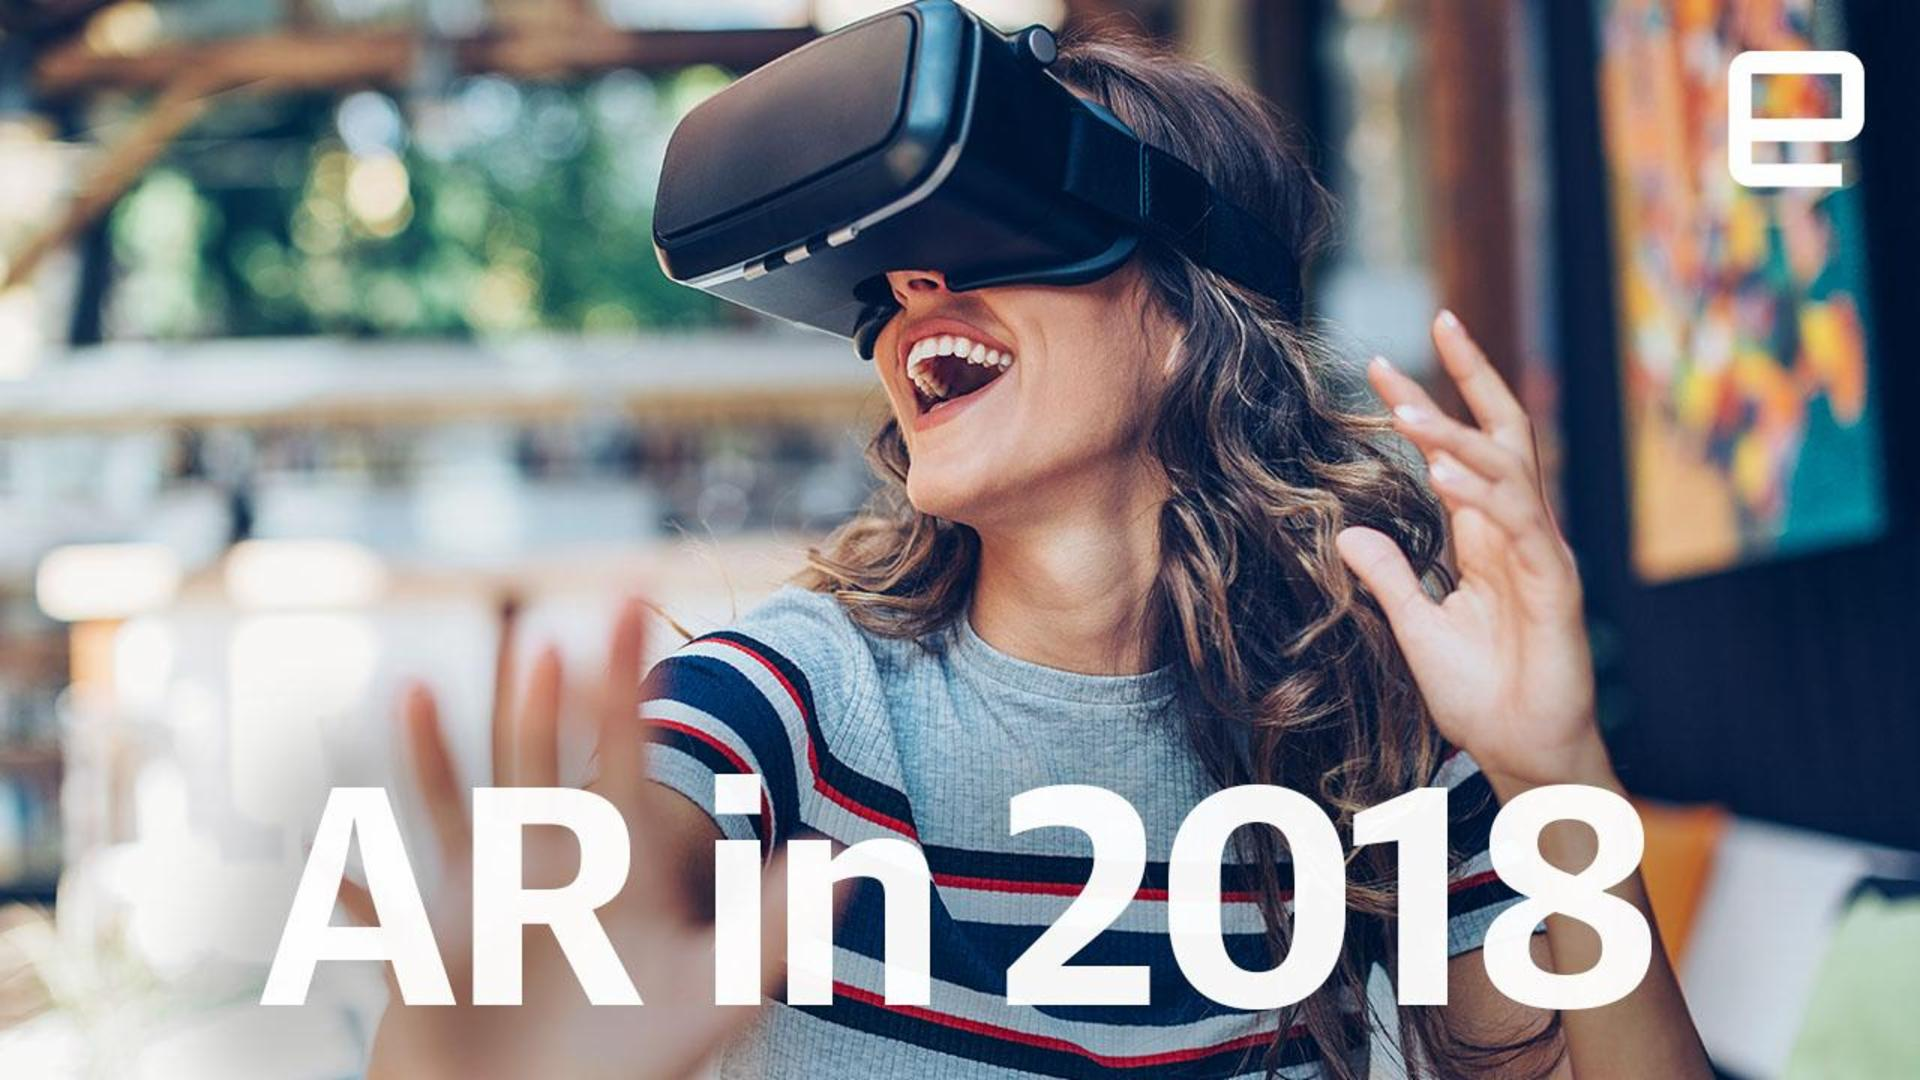 Worlds collide: VR and AR in 2018